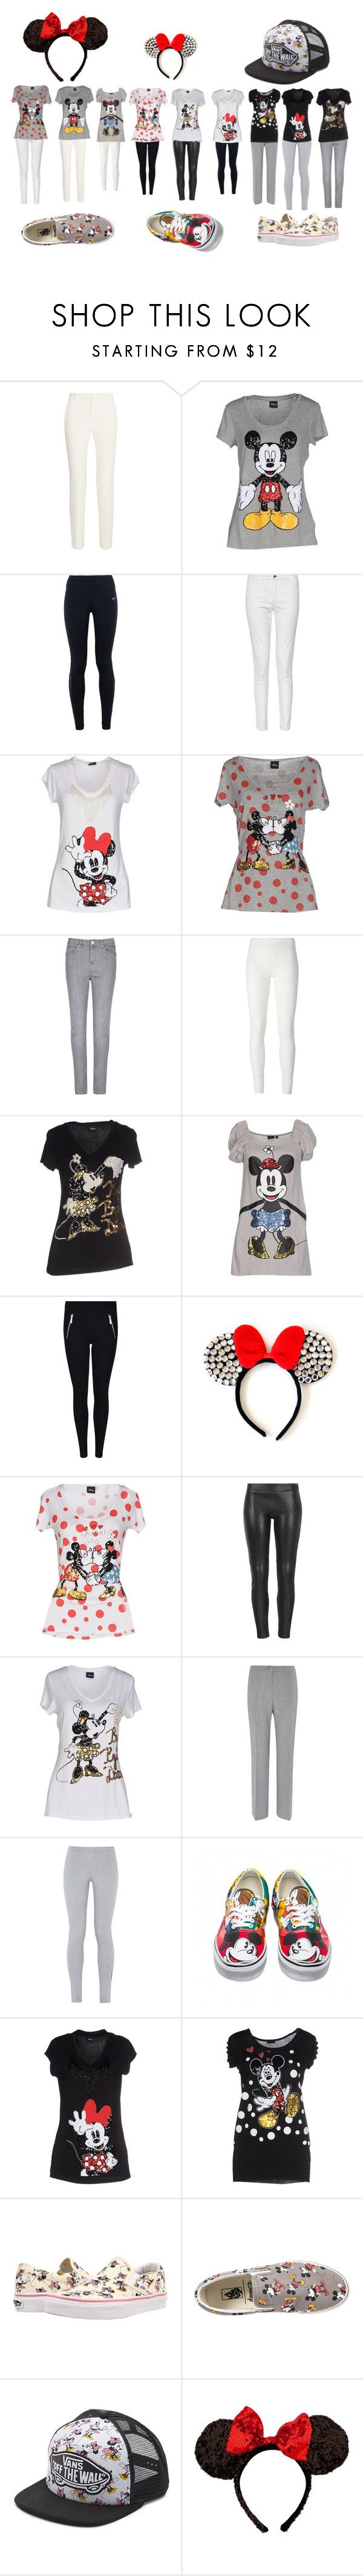 mickey mouse by alicejudo on Polyvore featuring mode, Disney, NIKE, Per Una, Viyella, French Connection, Roland Mouret, MuuBaa, MICHAEL Michael Kors and Rick Owens Lilies